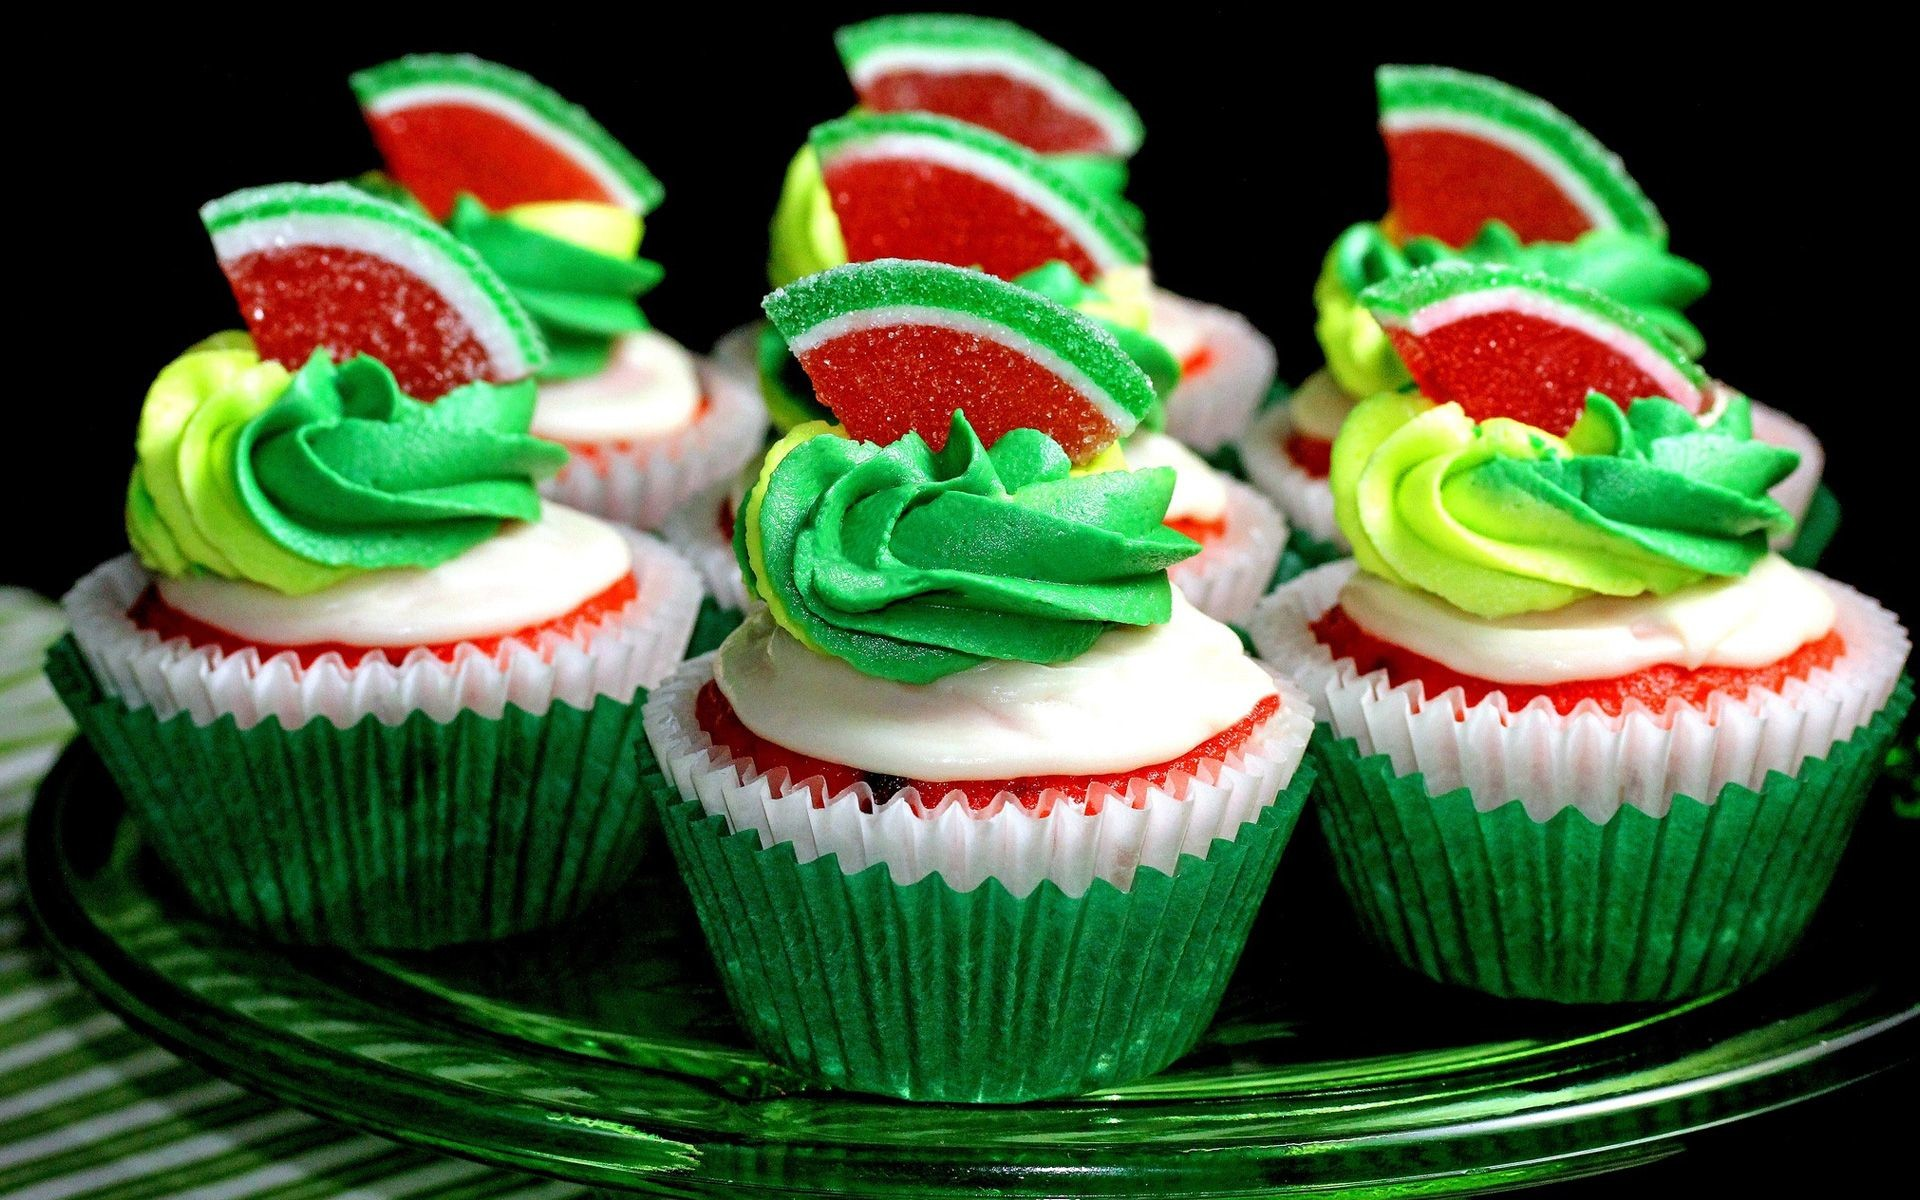 Res: 1920x1200, Watermelon Cup cakes HD Wallpaper Cake, Cup Cake, HD, Wallpapers,  Chocolate, Cream, Raspberry, Strawberry, Vanilla, Cakes, Images, Photos,  Pictures, ...